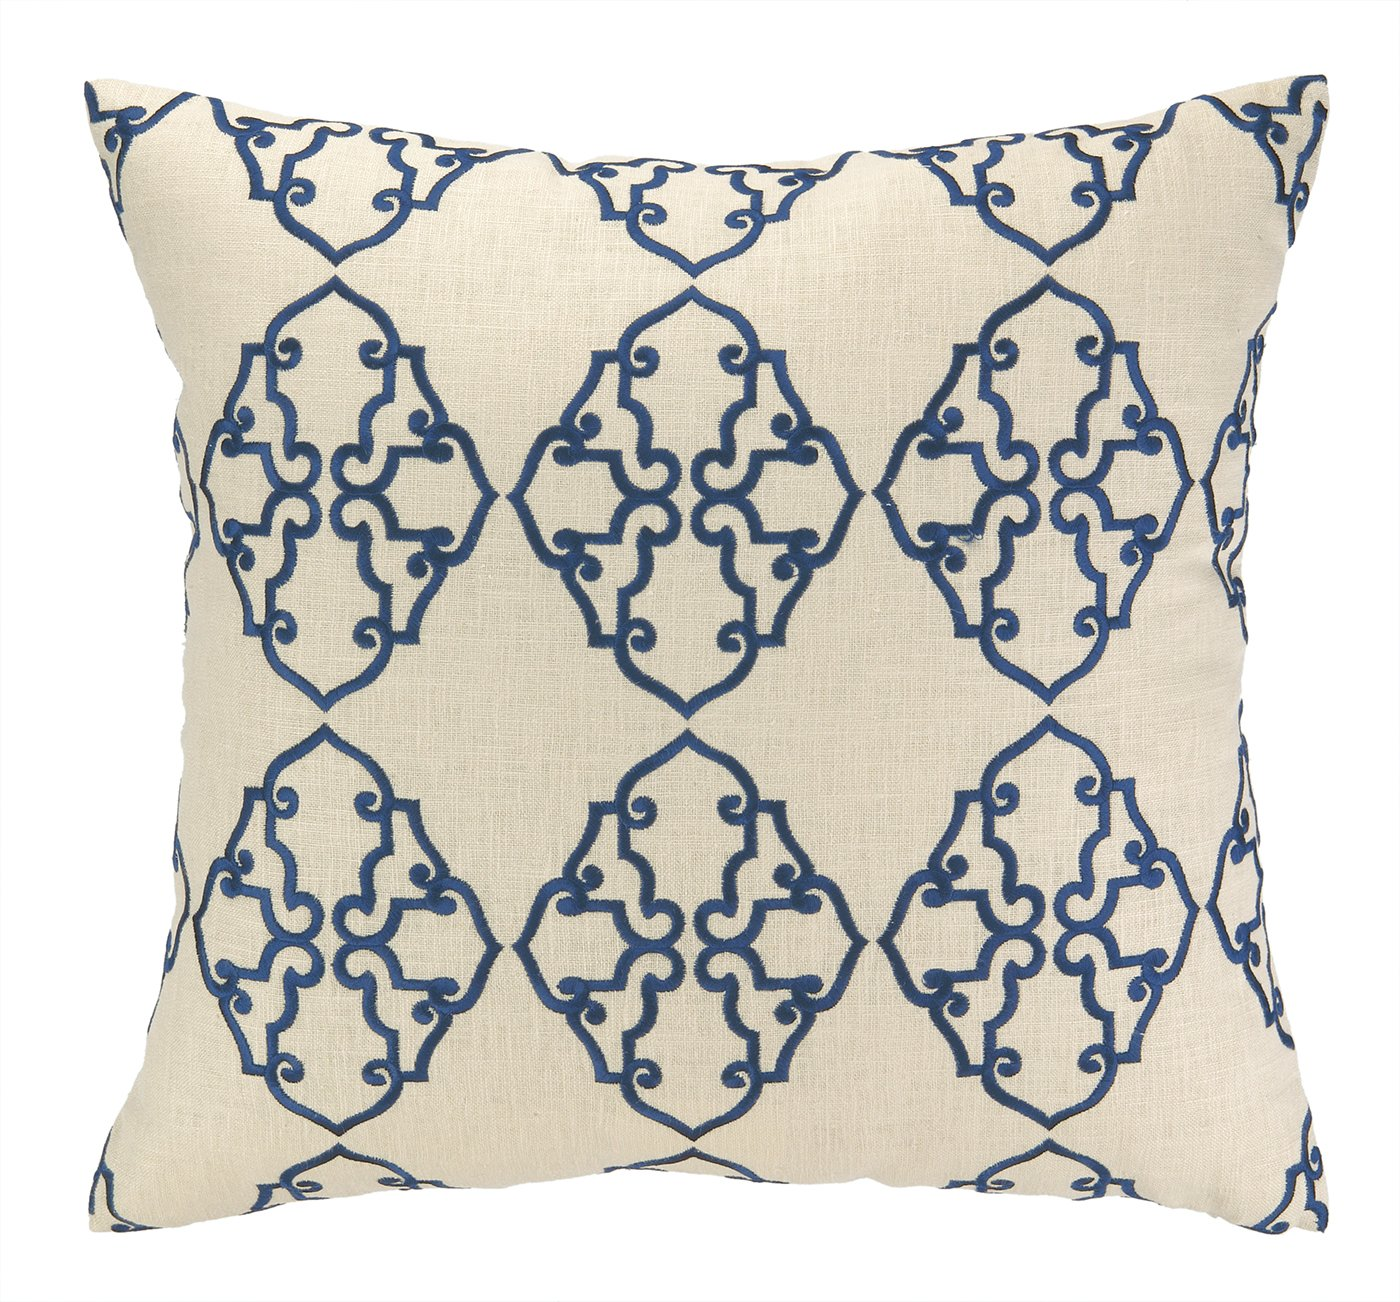 Navy Blue 20 by 20-Inch D.L Rhein Filigree Embroidered Decorative Pillow